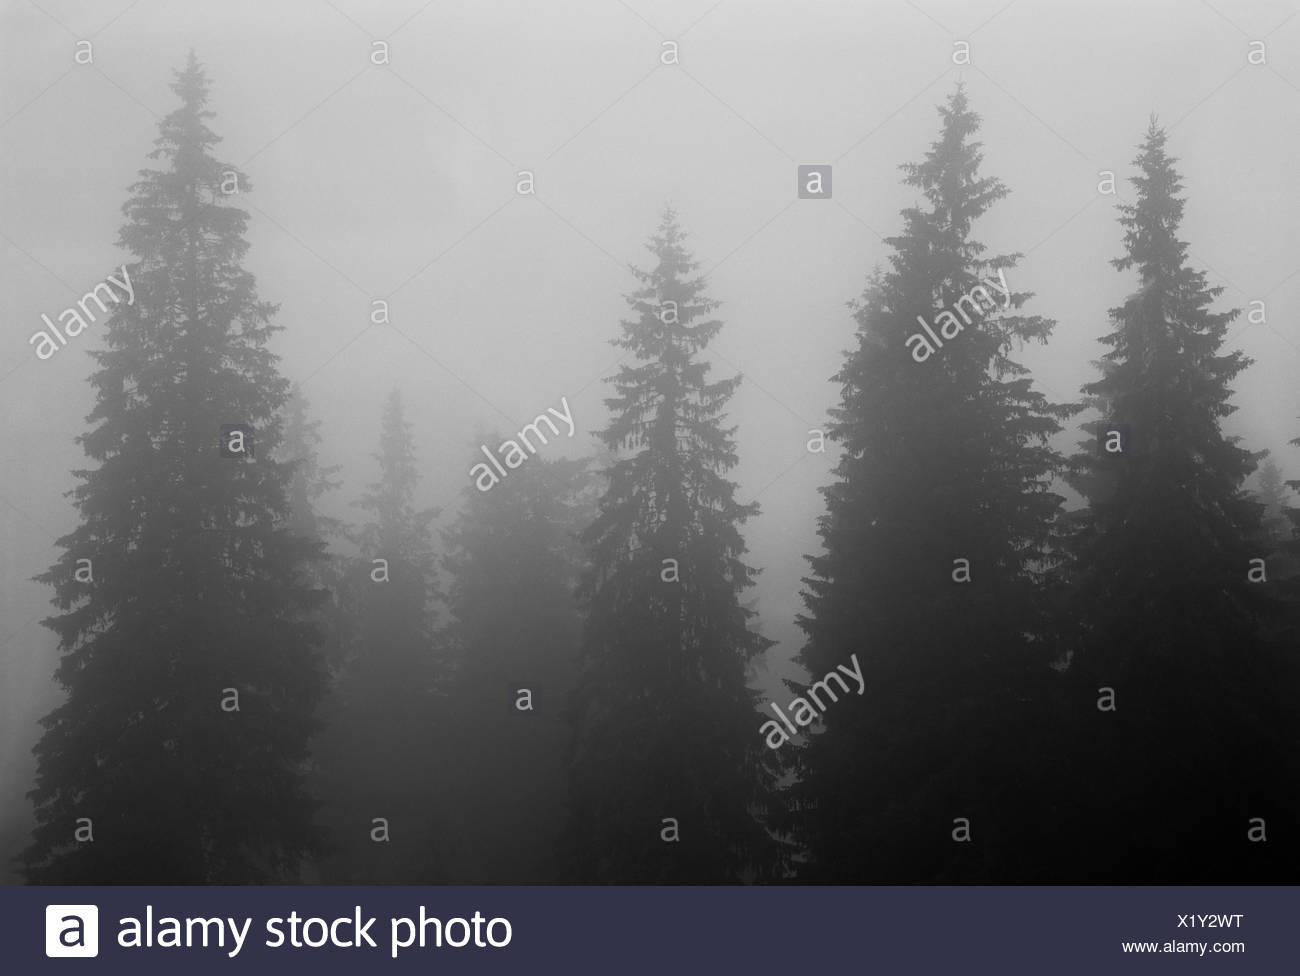 Sweden, Dalarna, Furudal, Picture of forest in fog - Stock Image